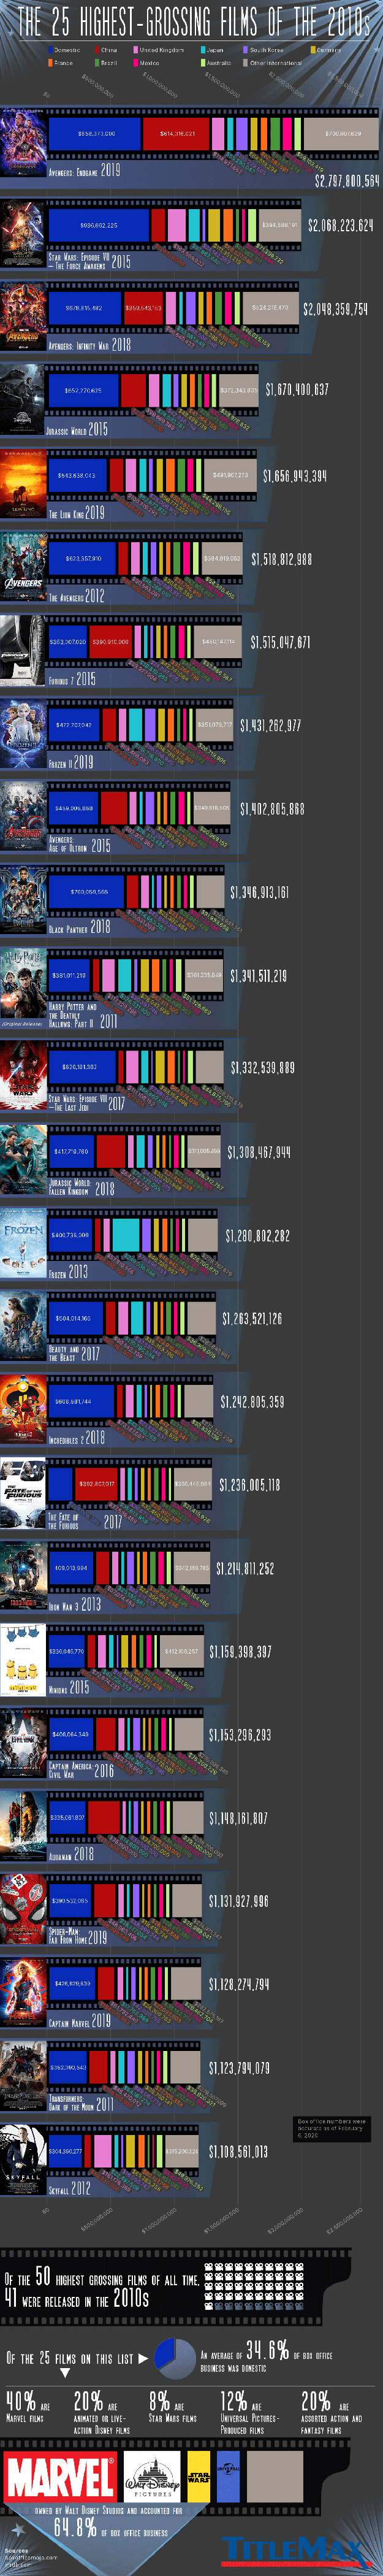 Inforgraphic of The 25 Highest-Grossing Films of the 2010s